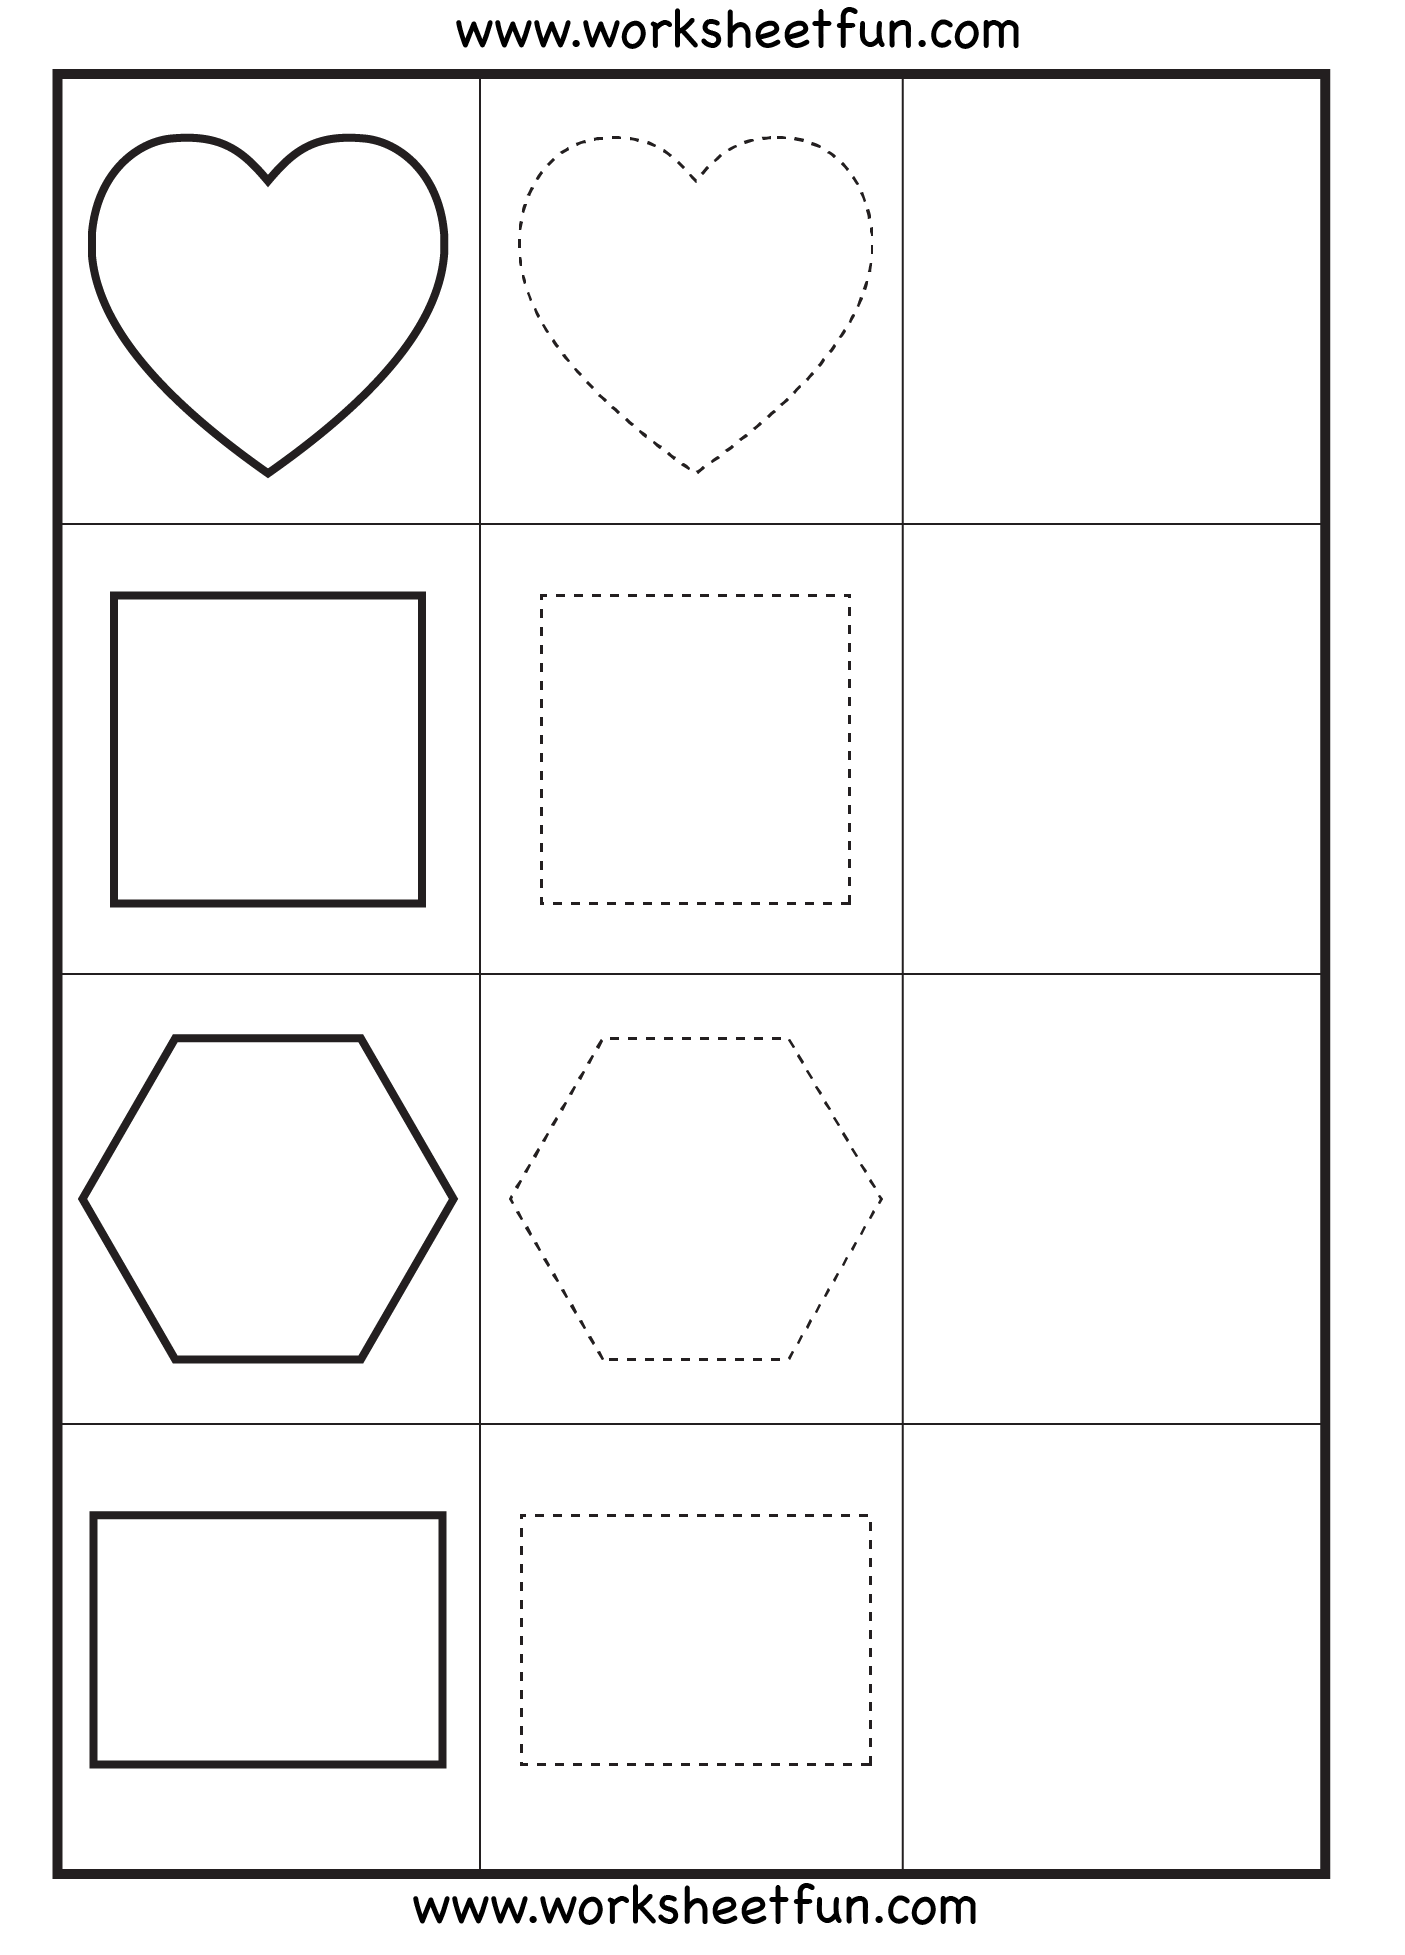 Preschool Shape Worksheet With Images